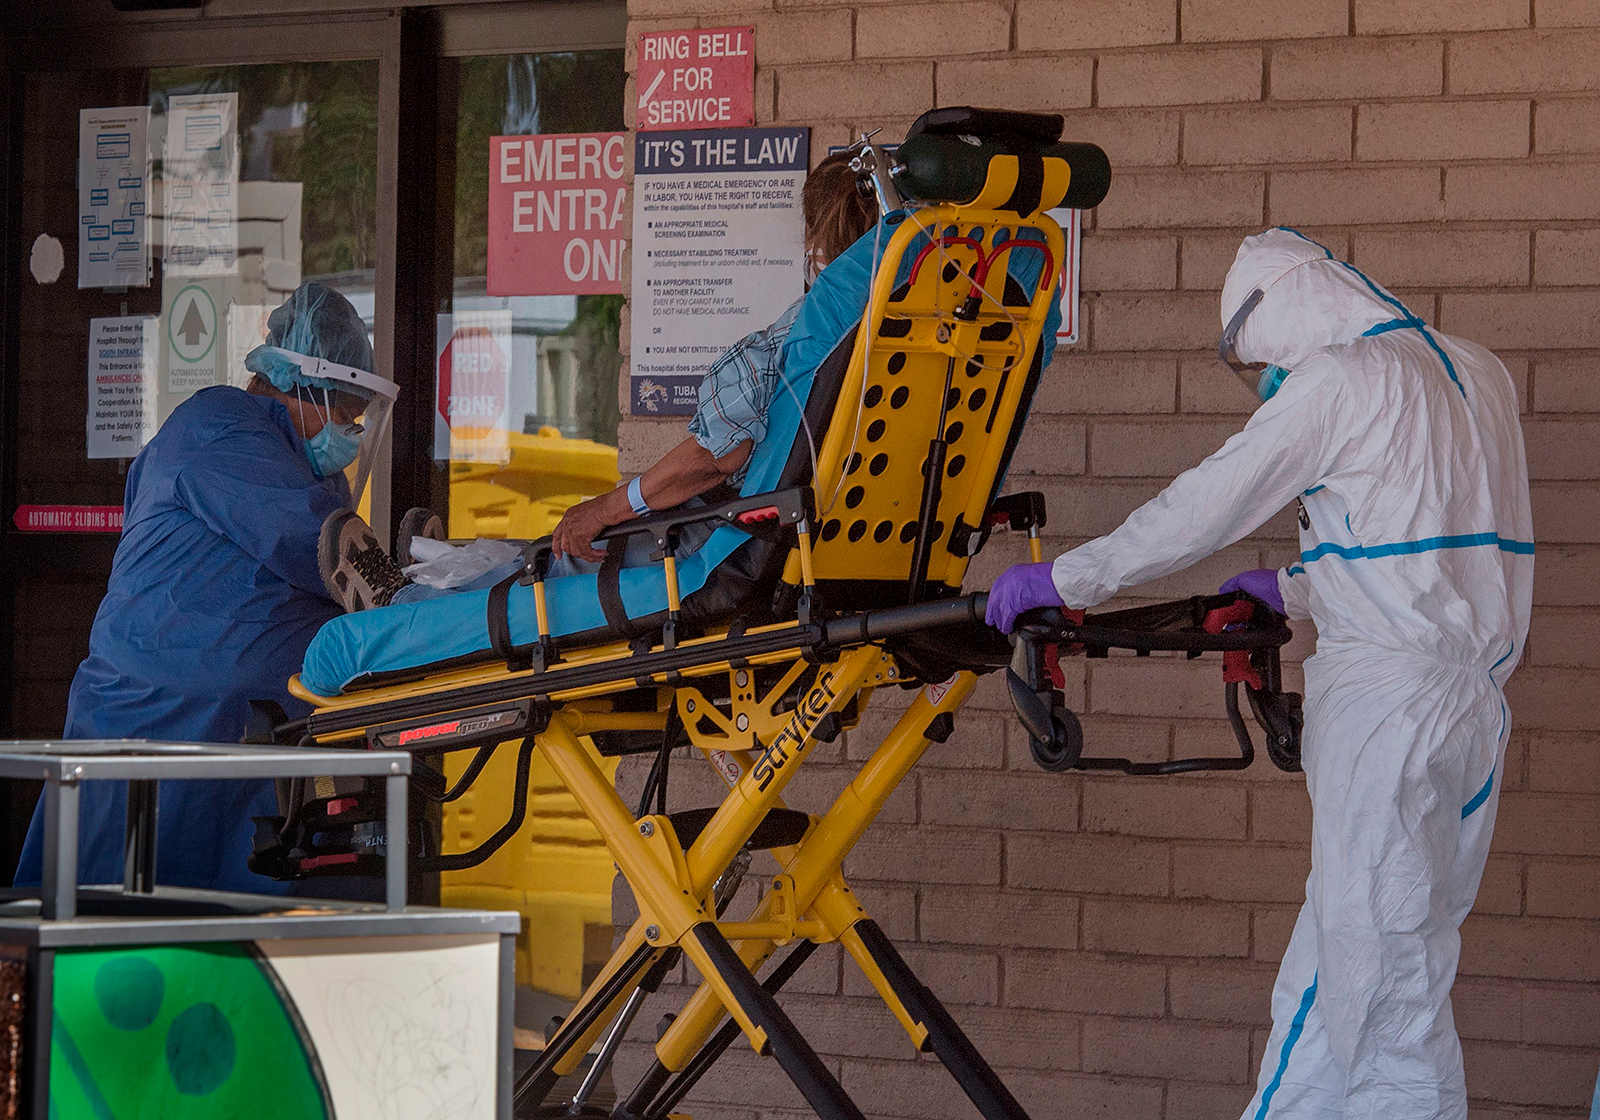 A patient is taken from an ambulance to the emergency room of a hospital in the Navajo Nation town of Tuba City during the 57 hour curfew, imposed to try to stop the spread of the COVID-19 virus through the Navajo Nation, in Arizona on May 24, 2020. (MARK RALSTON/AFP via Getty Images)